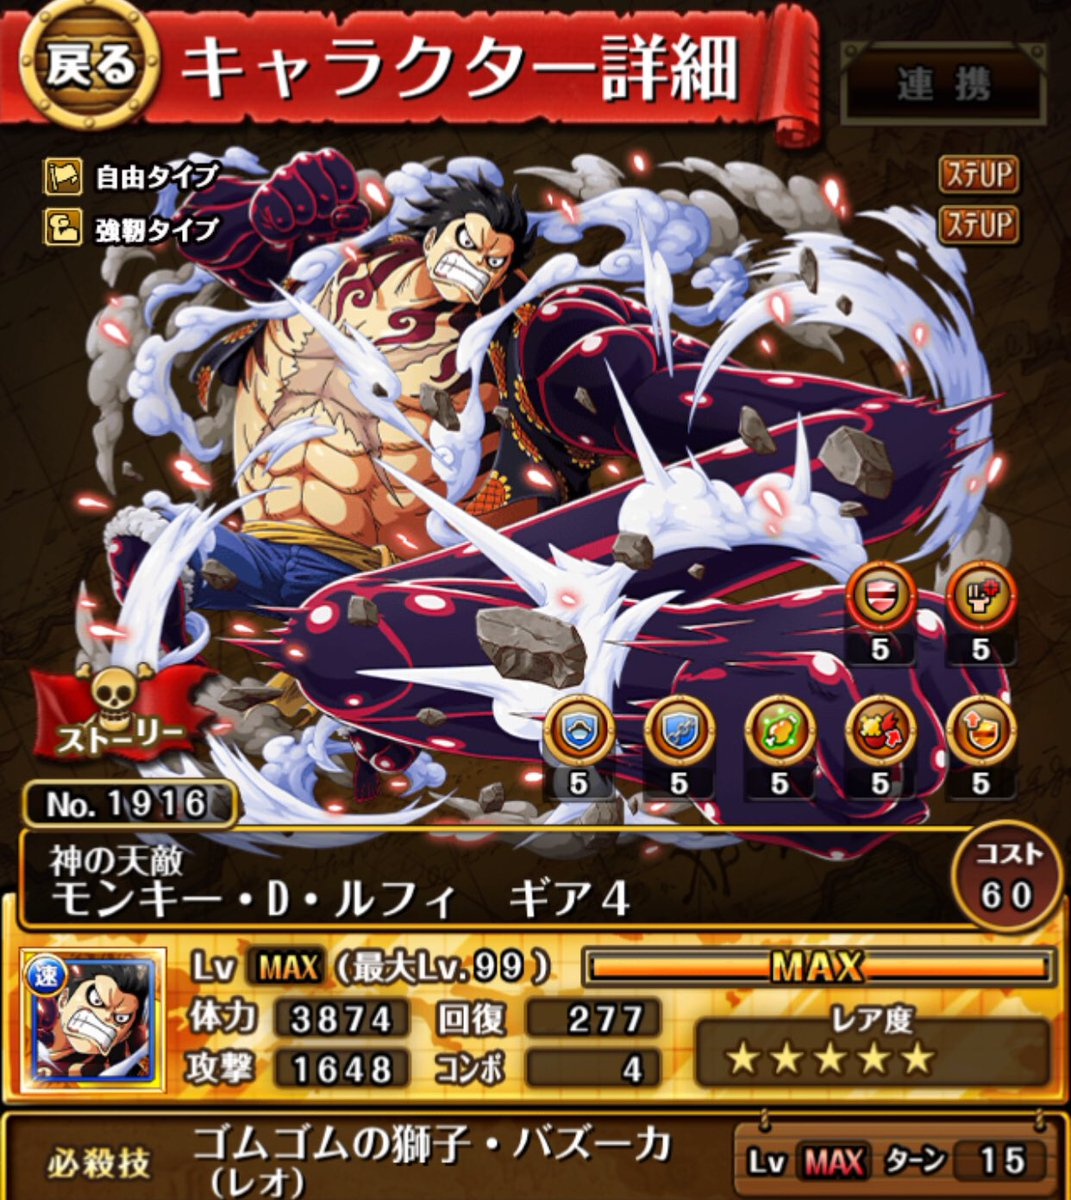 Snakeman straw hat pirates captain in his new gear four form shown during his battle with katakuri. Ichibankenshin On Twitter Fully Maxed Adventure Mode Luffy Now Where Is That Cotton Candy Optc Onepiece Luffy Strawhat Gear4 Adventuremode Https T Co X1f8ug1cb1